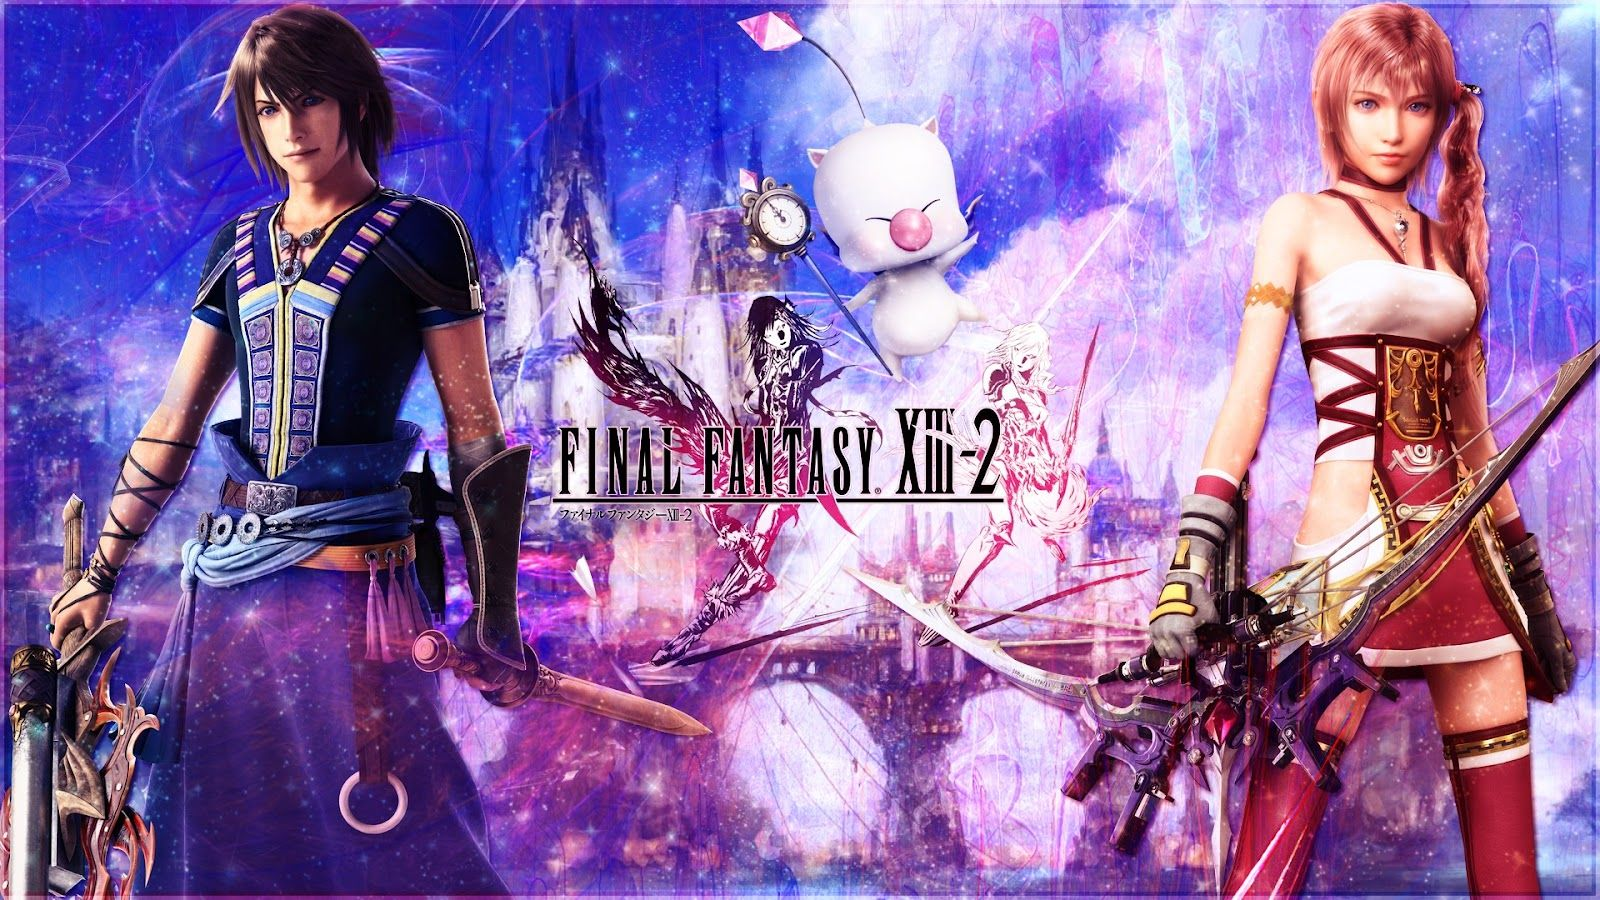 Ffxiii Wallpaper 1080p With Images Lightning Final Fantasy